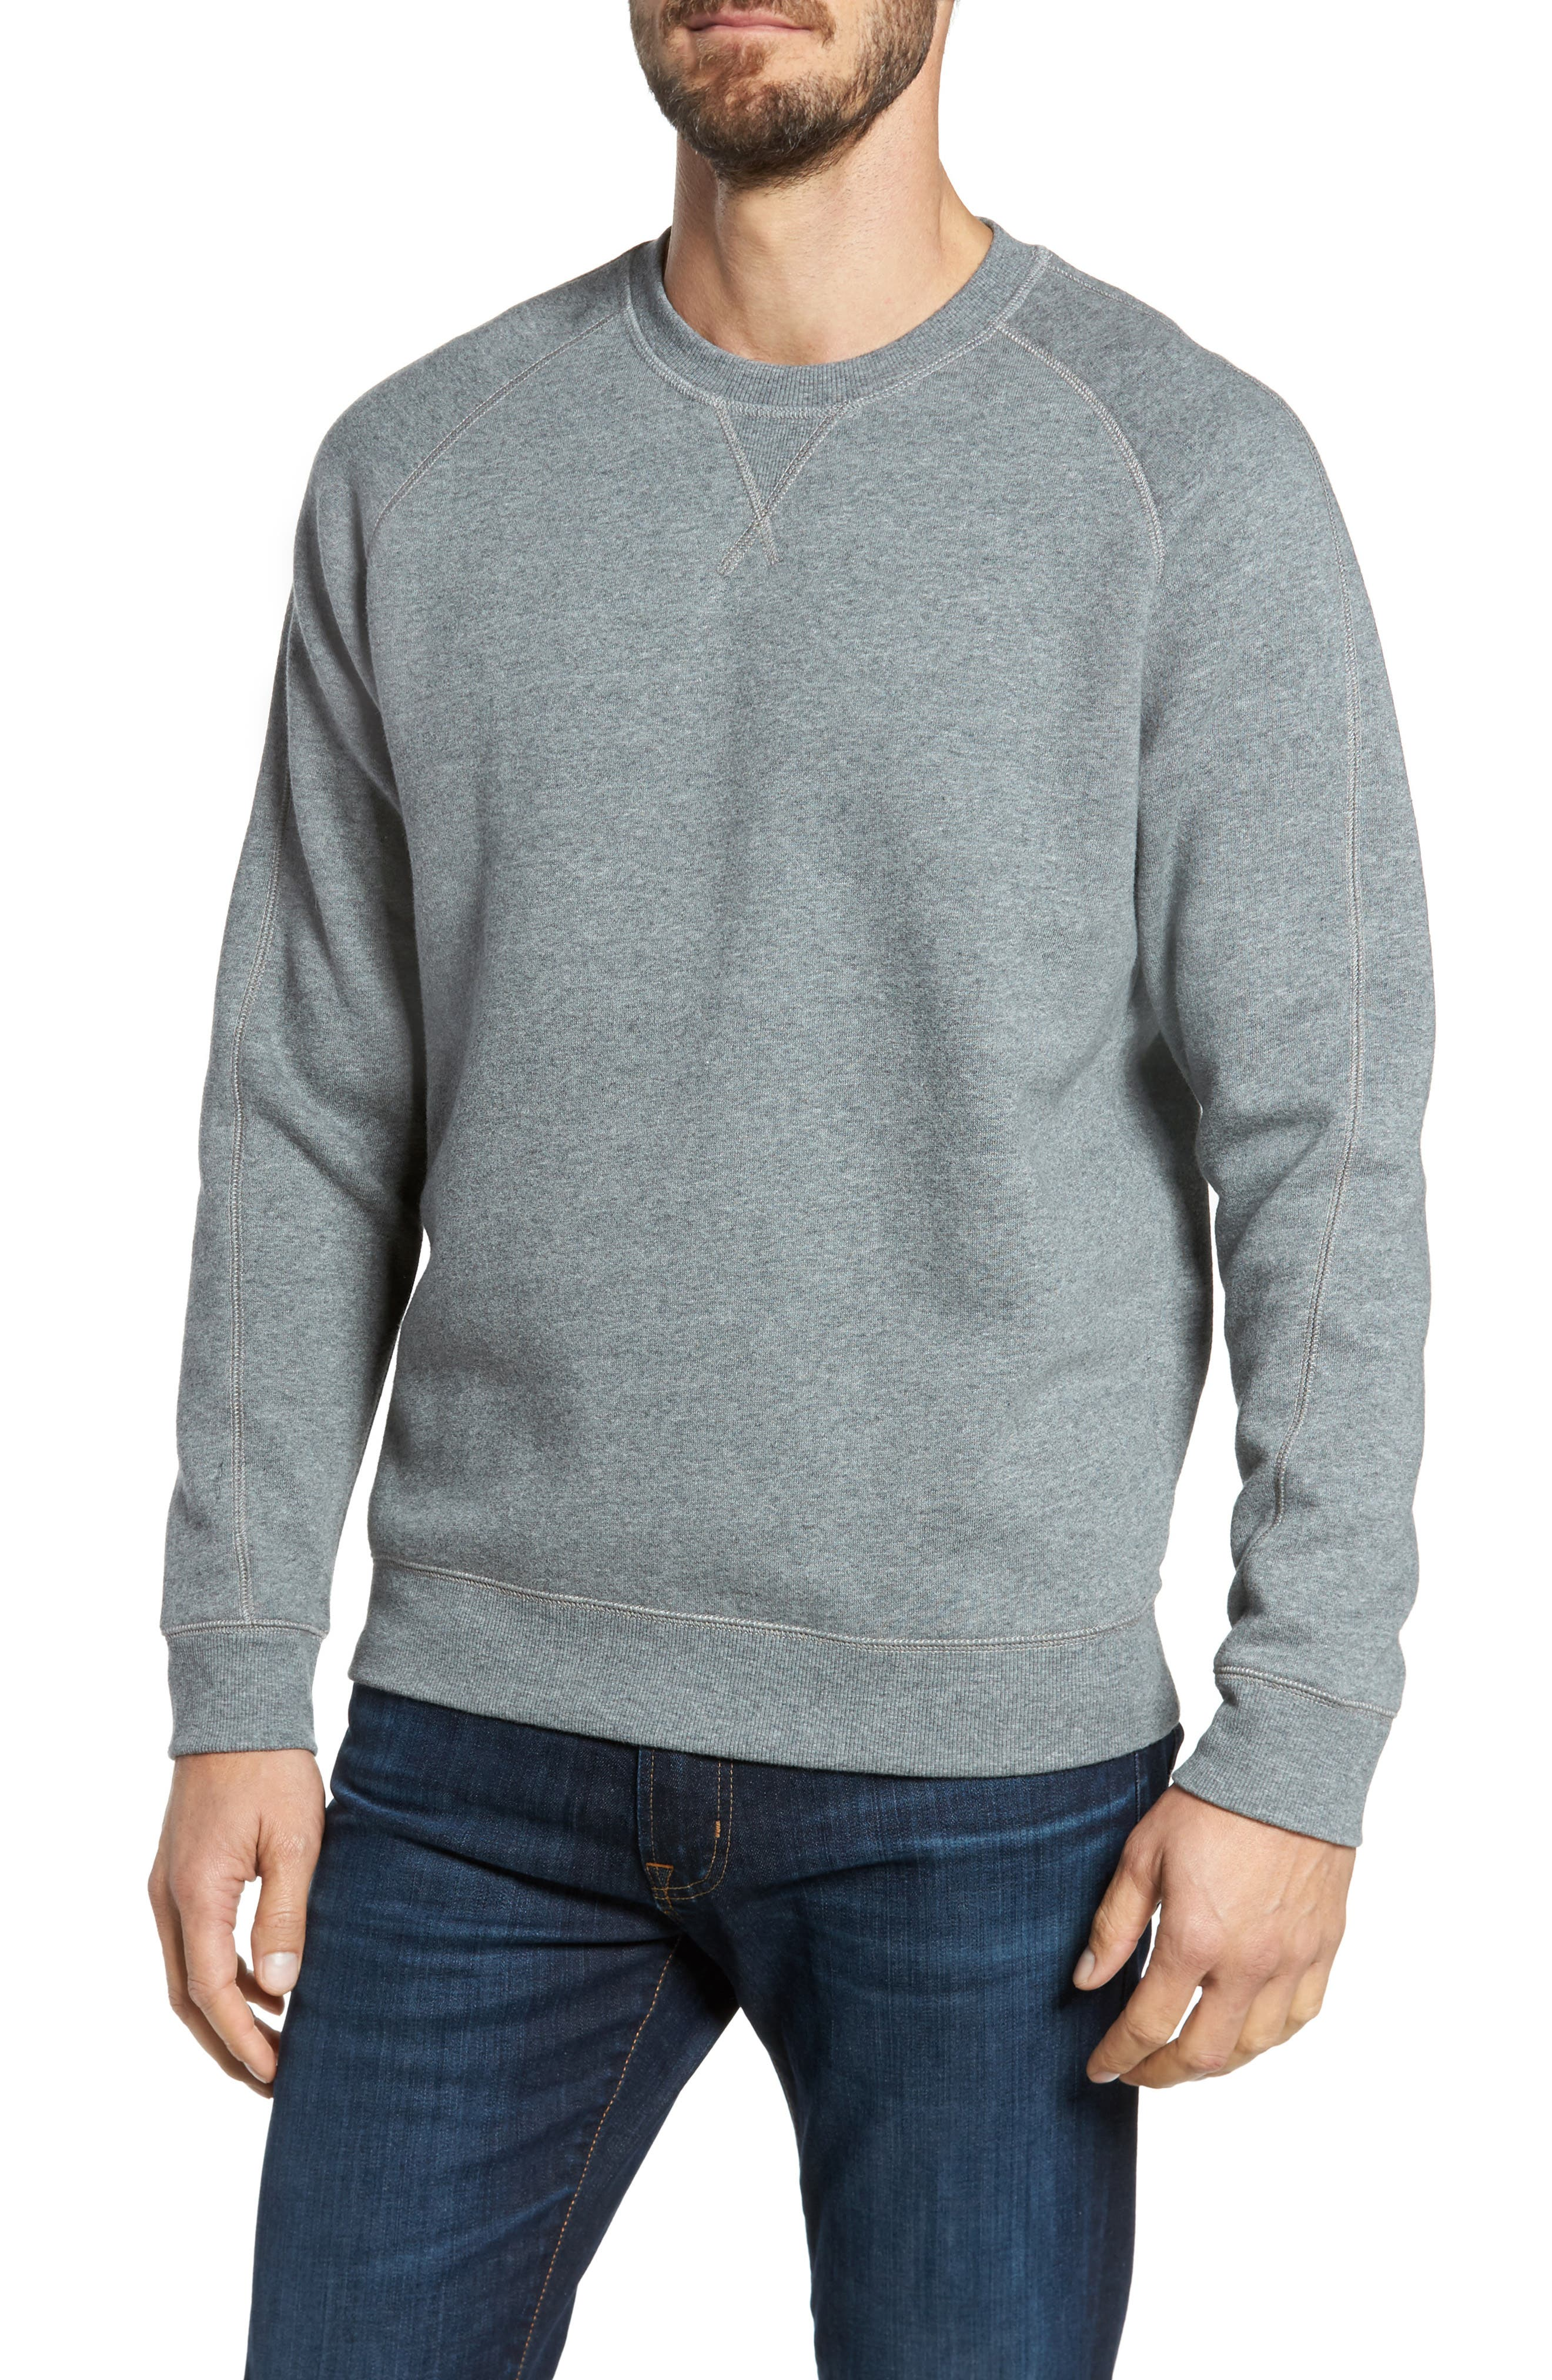 Fleece Sweatshirt,                             Main thumbnail 1, color,                             030